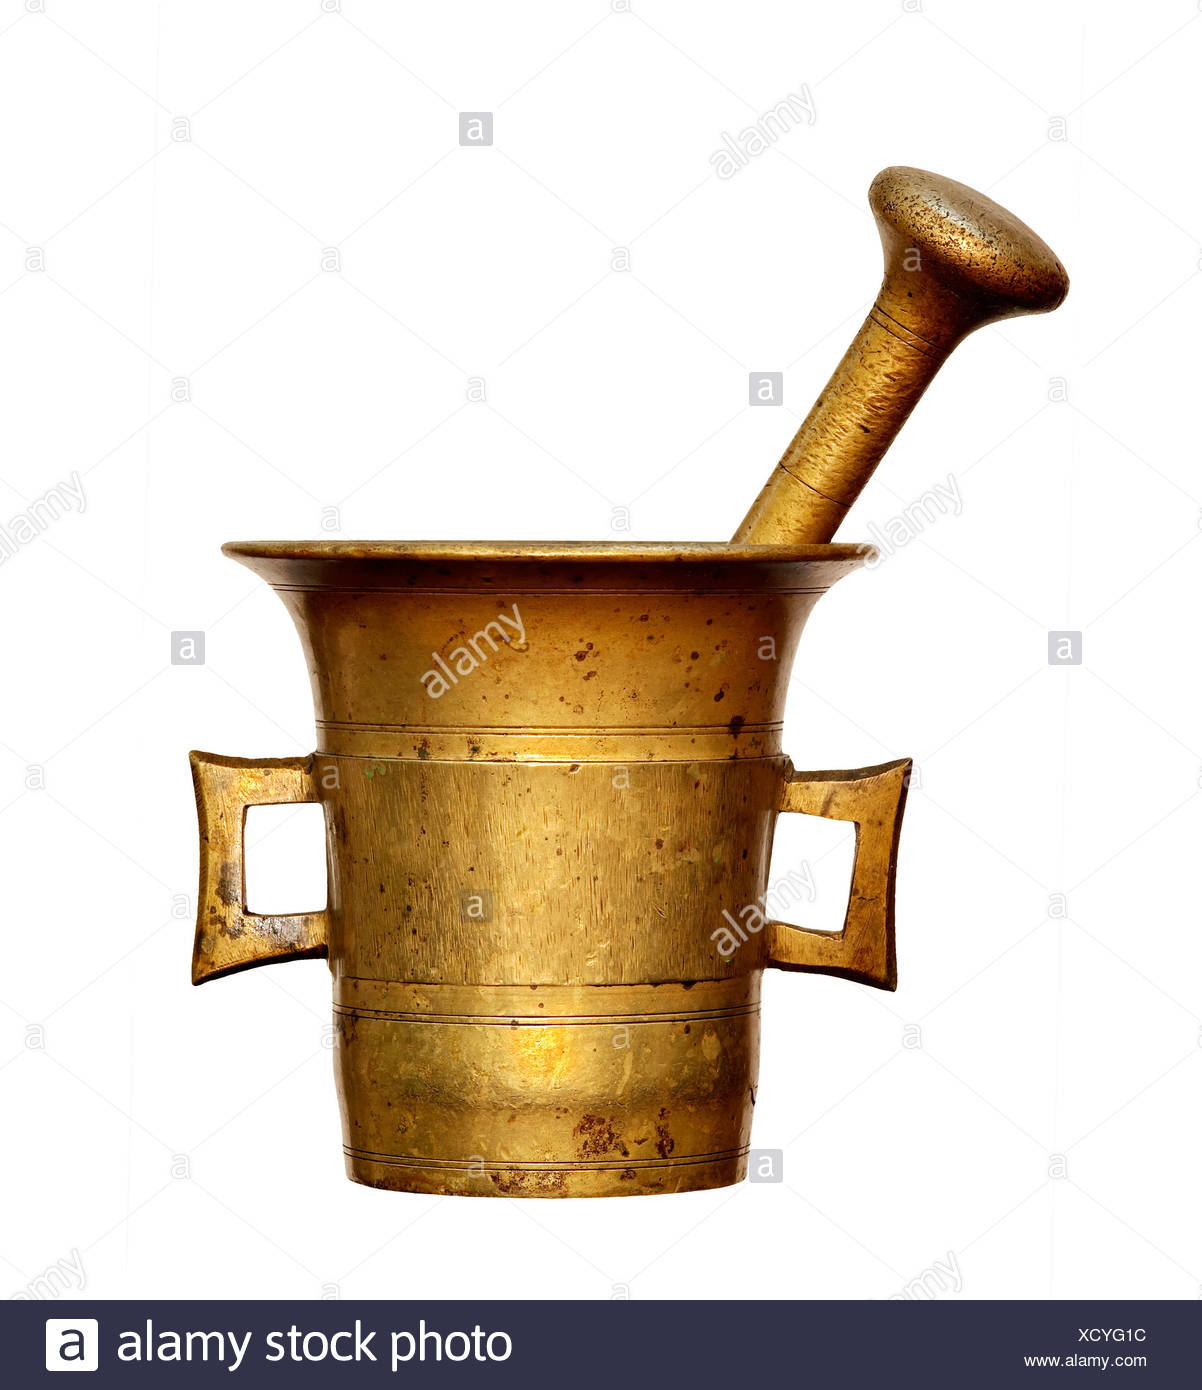 object metal mortar pestle kitchenware alchemy object detail isolated antique - Stock Image